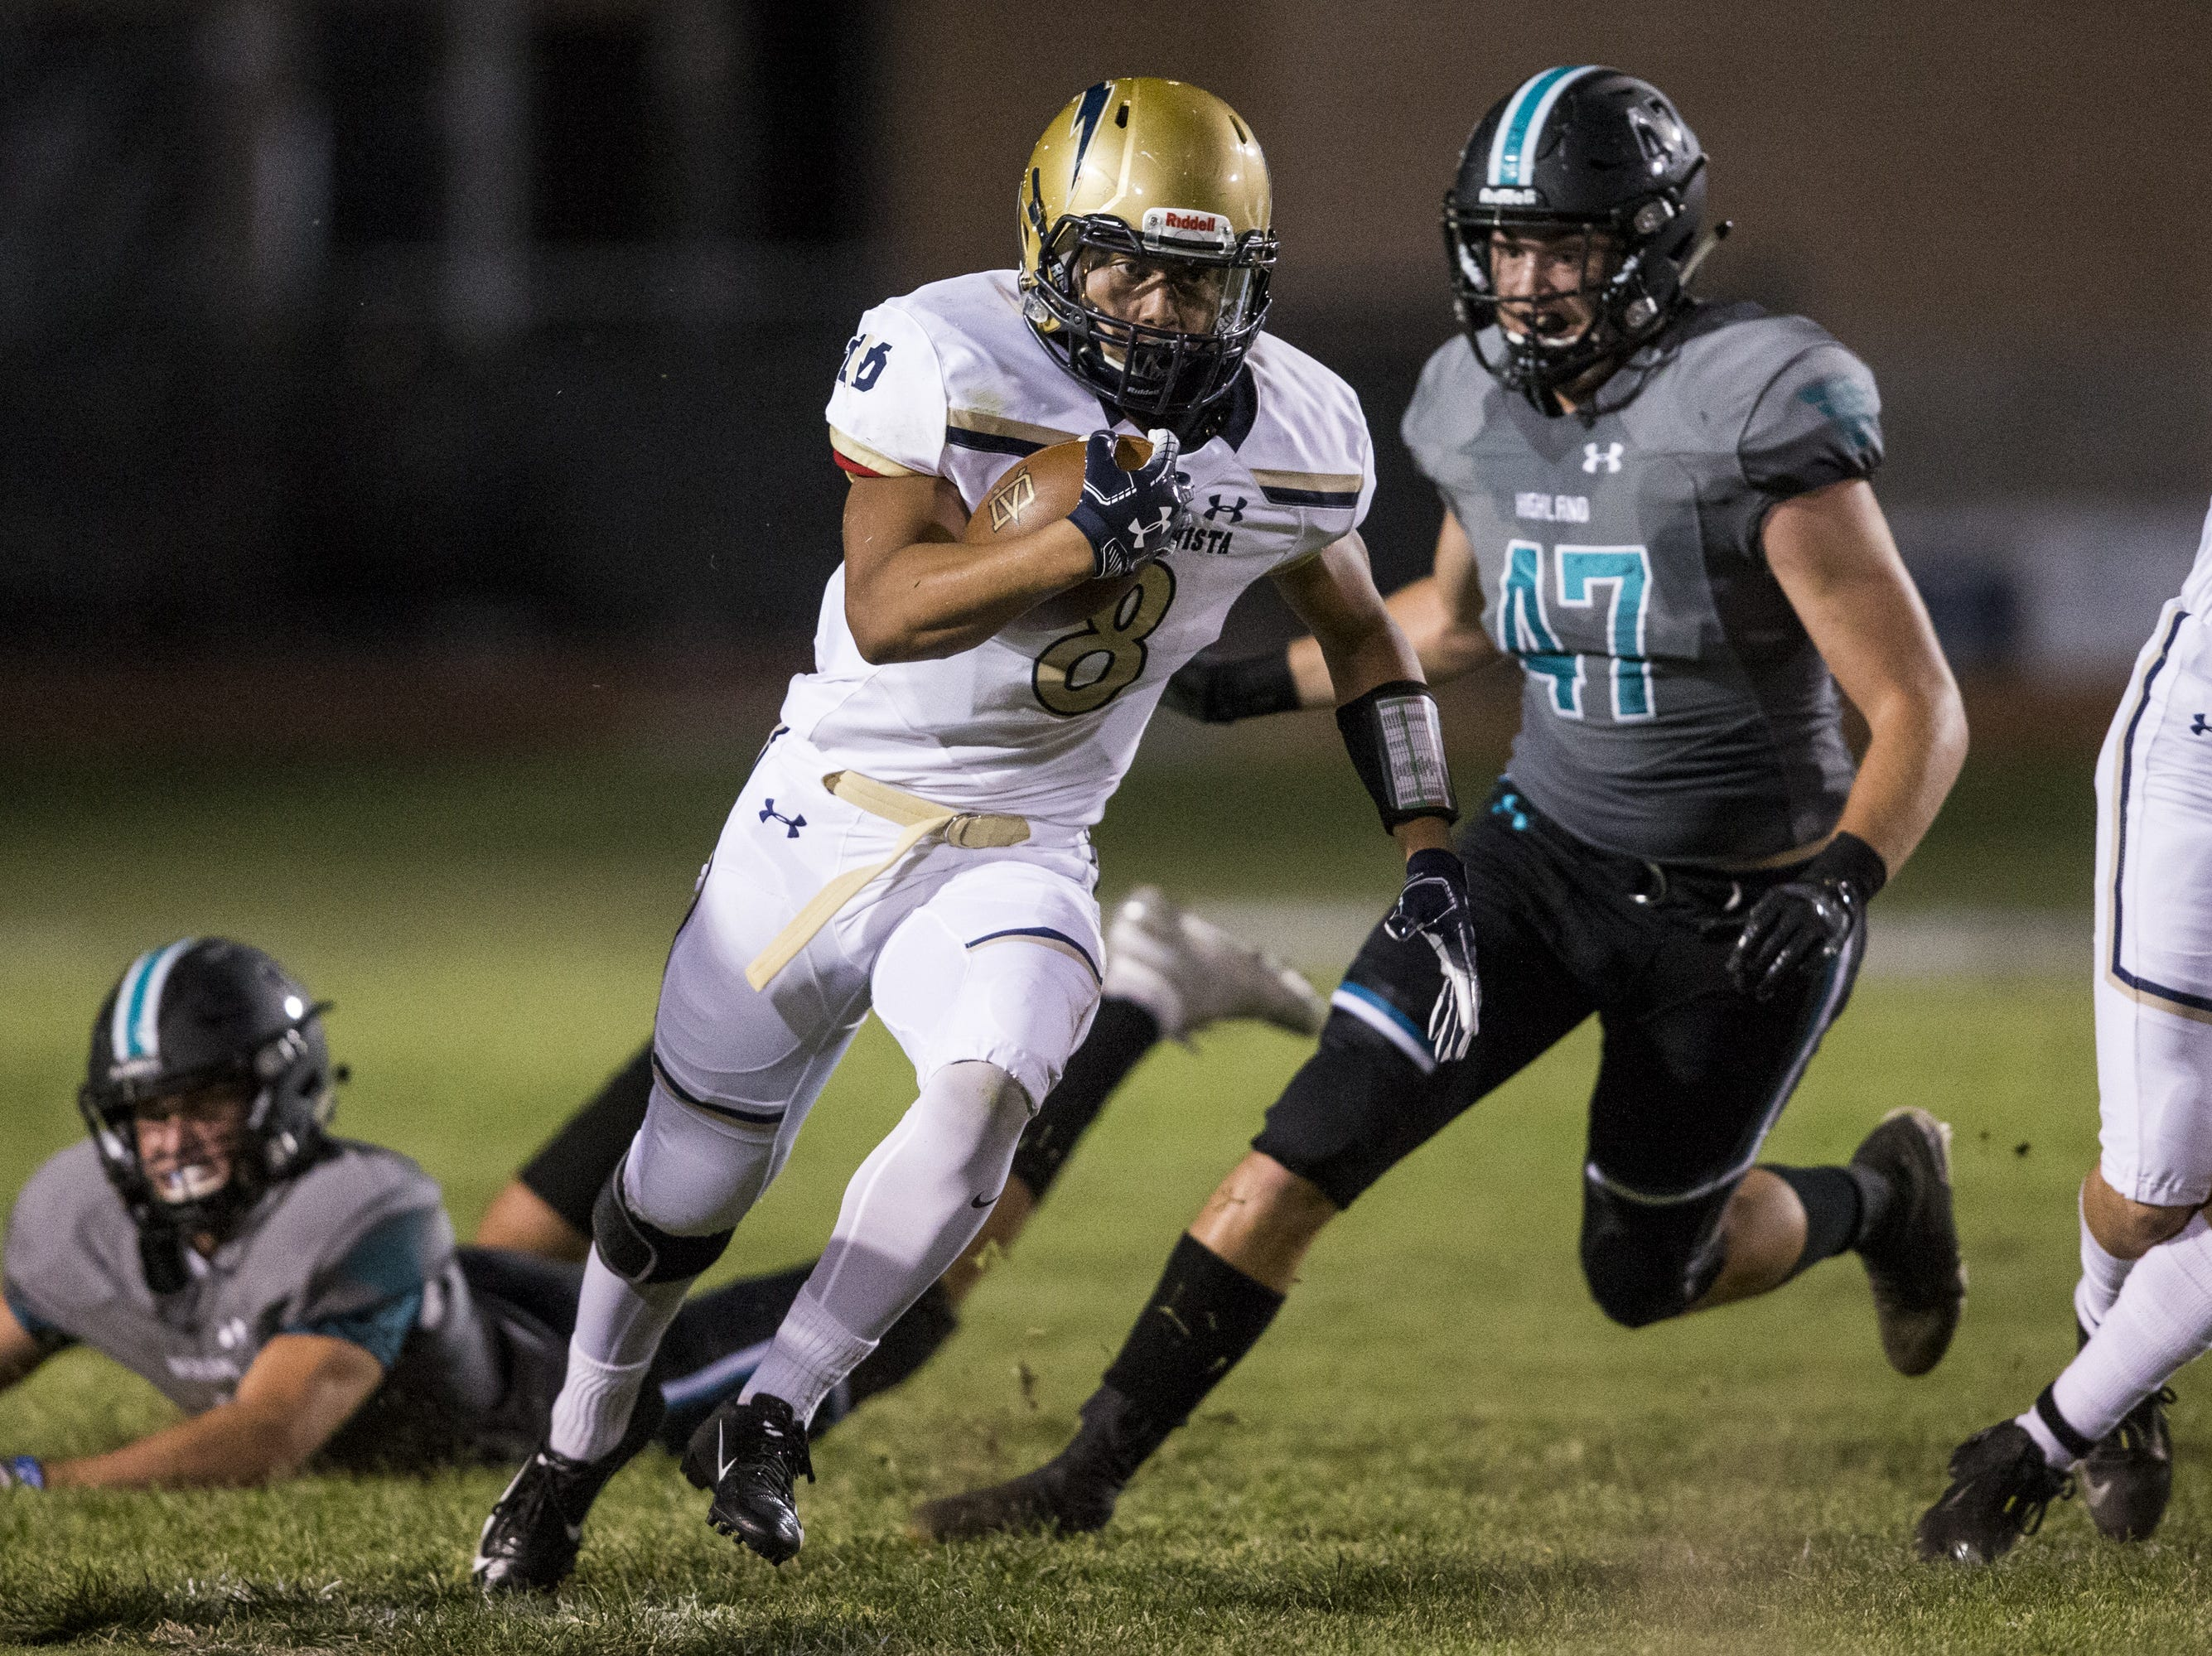 Desert Vista's Tyson Grubbs rushes against Highland in the 1st quarter on Friday, Sept. 21, 2018, at Highland High School in Gilbert, Ariz.   #azhsfb